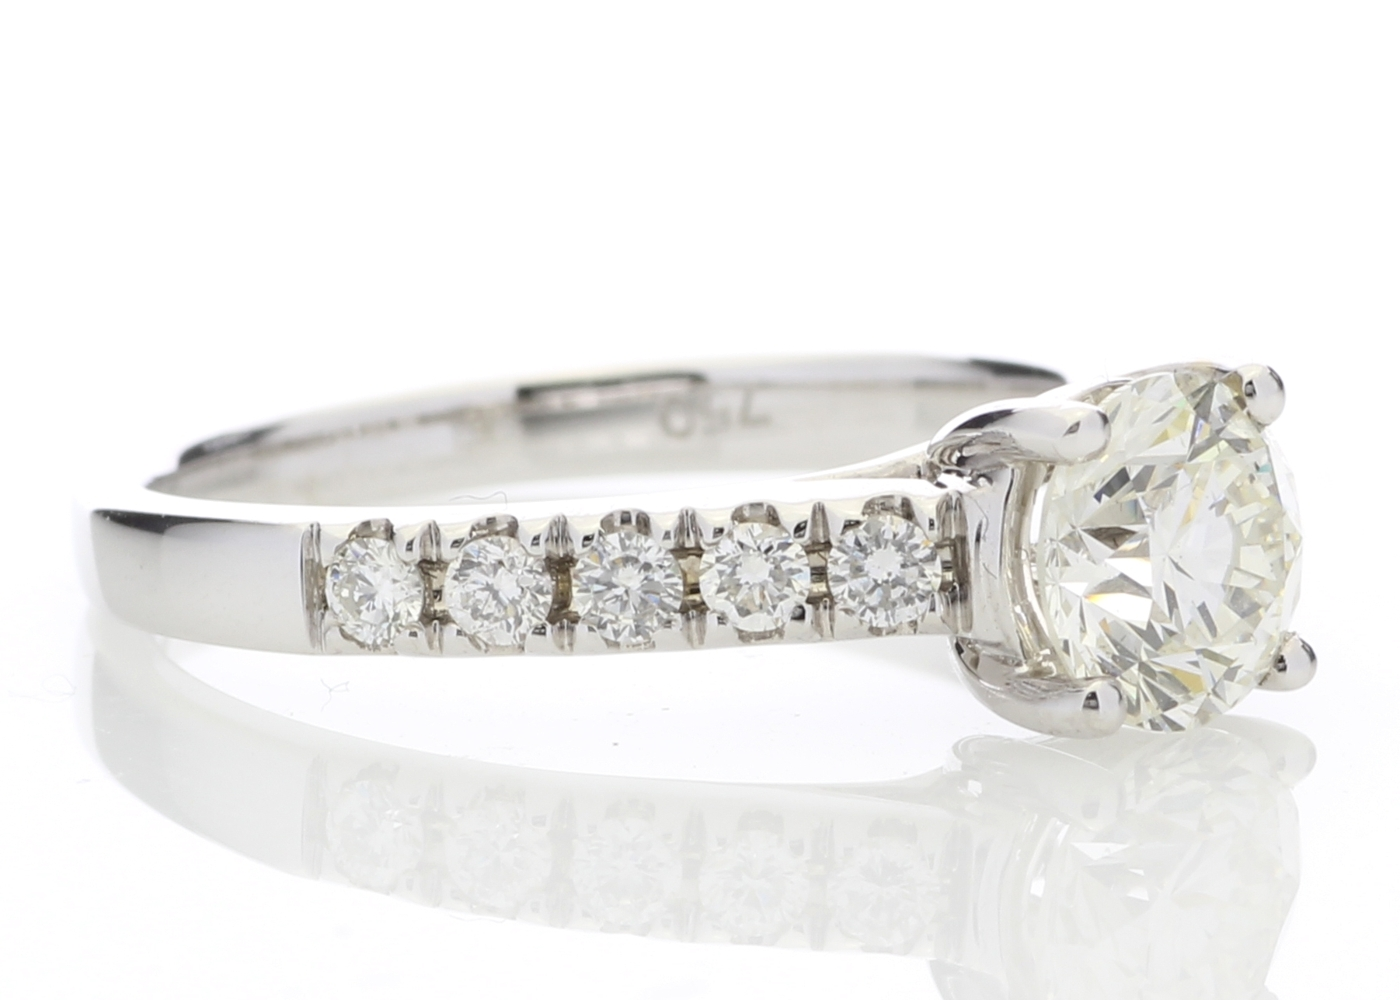 18ct White Gold Single Stone Diamond Ring With Stone Set Shoulders (1.02) 1.32 Carats - Image 4 of 5